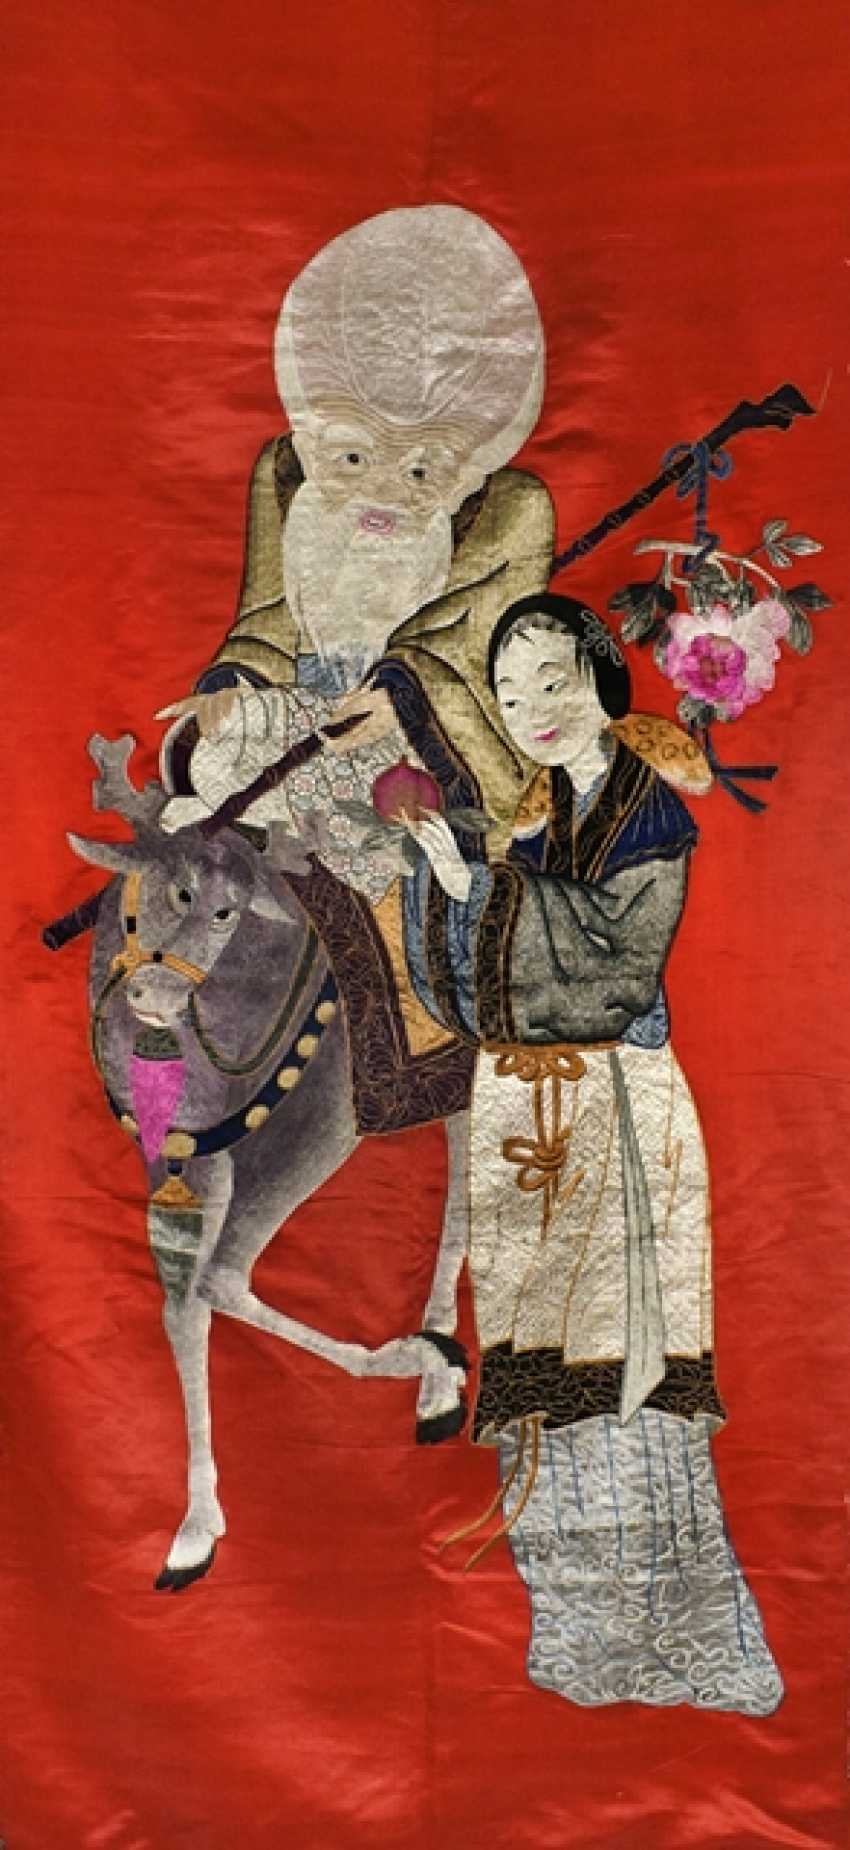 Silk embroidery with Shoulao and Magu on a red Fond with brocade edging - photo 1